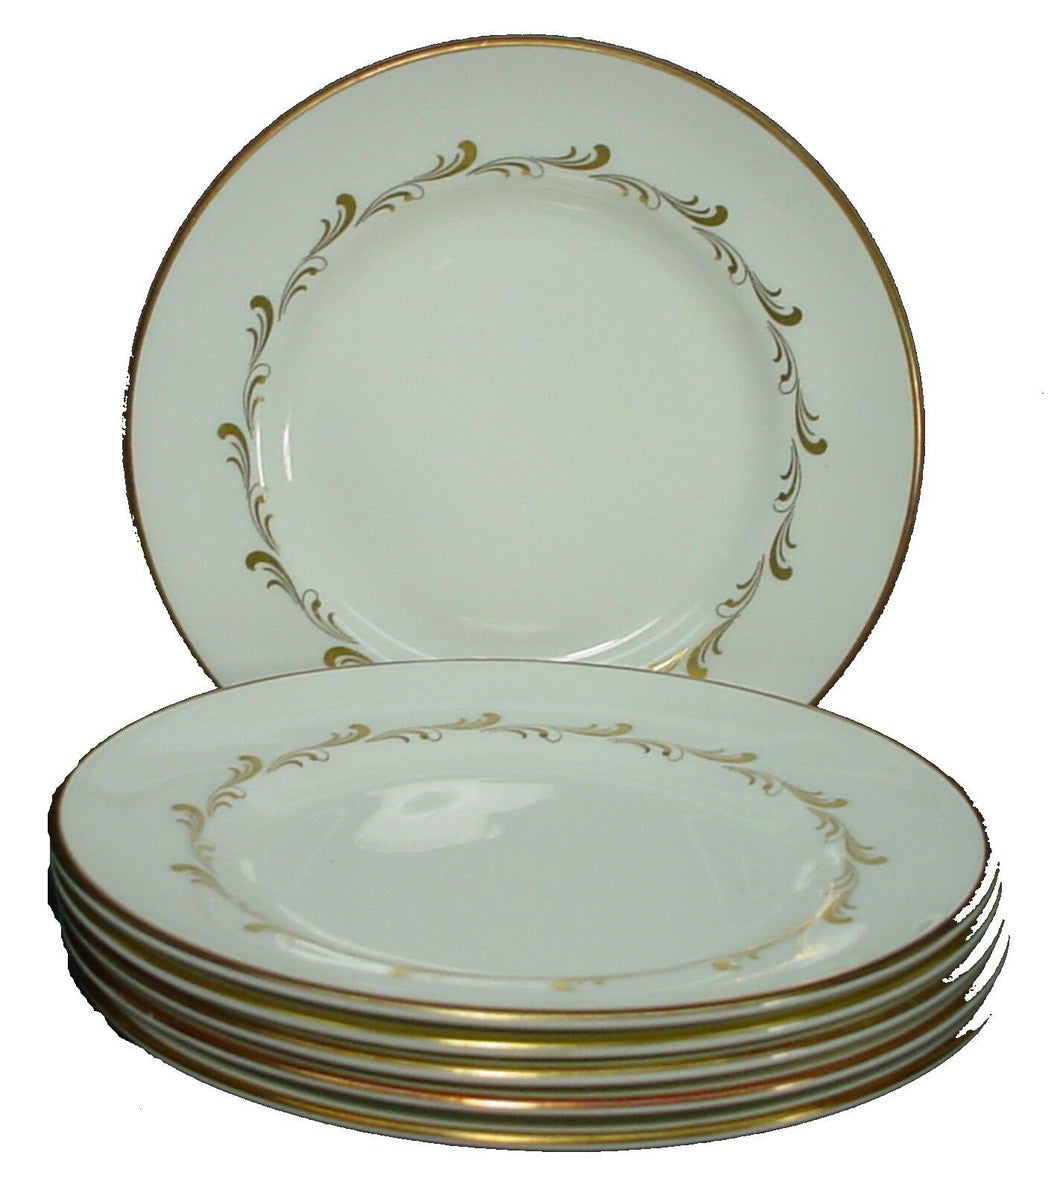 ROYAL DOULTON china RONDO H4935 Bread & Butter Plate - Set of Six (6) @ 6 1/8